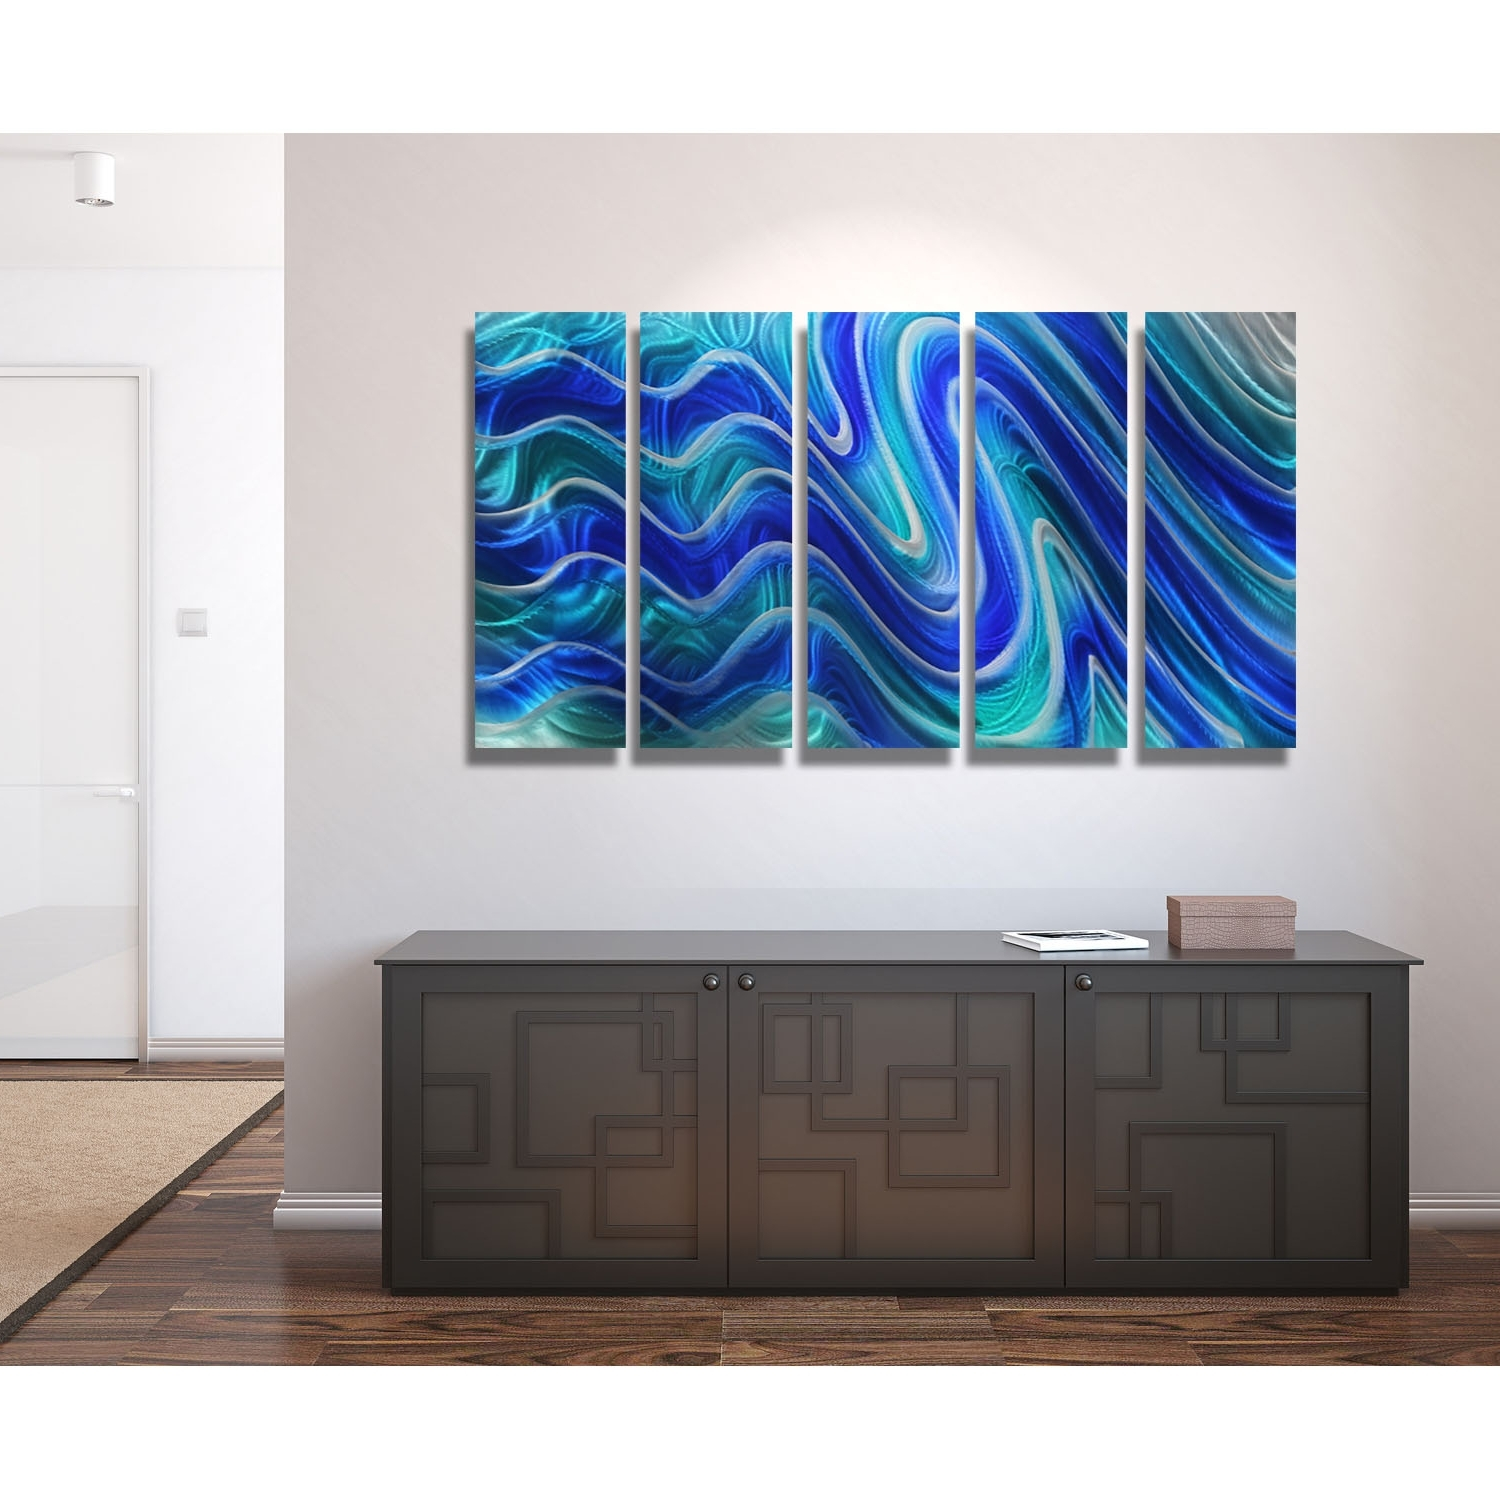 Favorite Teal Metal Wall Art Intended For Paradise Plunge – Blue, Teal And Silver Metal Wall Art – 5 Panel (View 3 of 15)